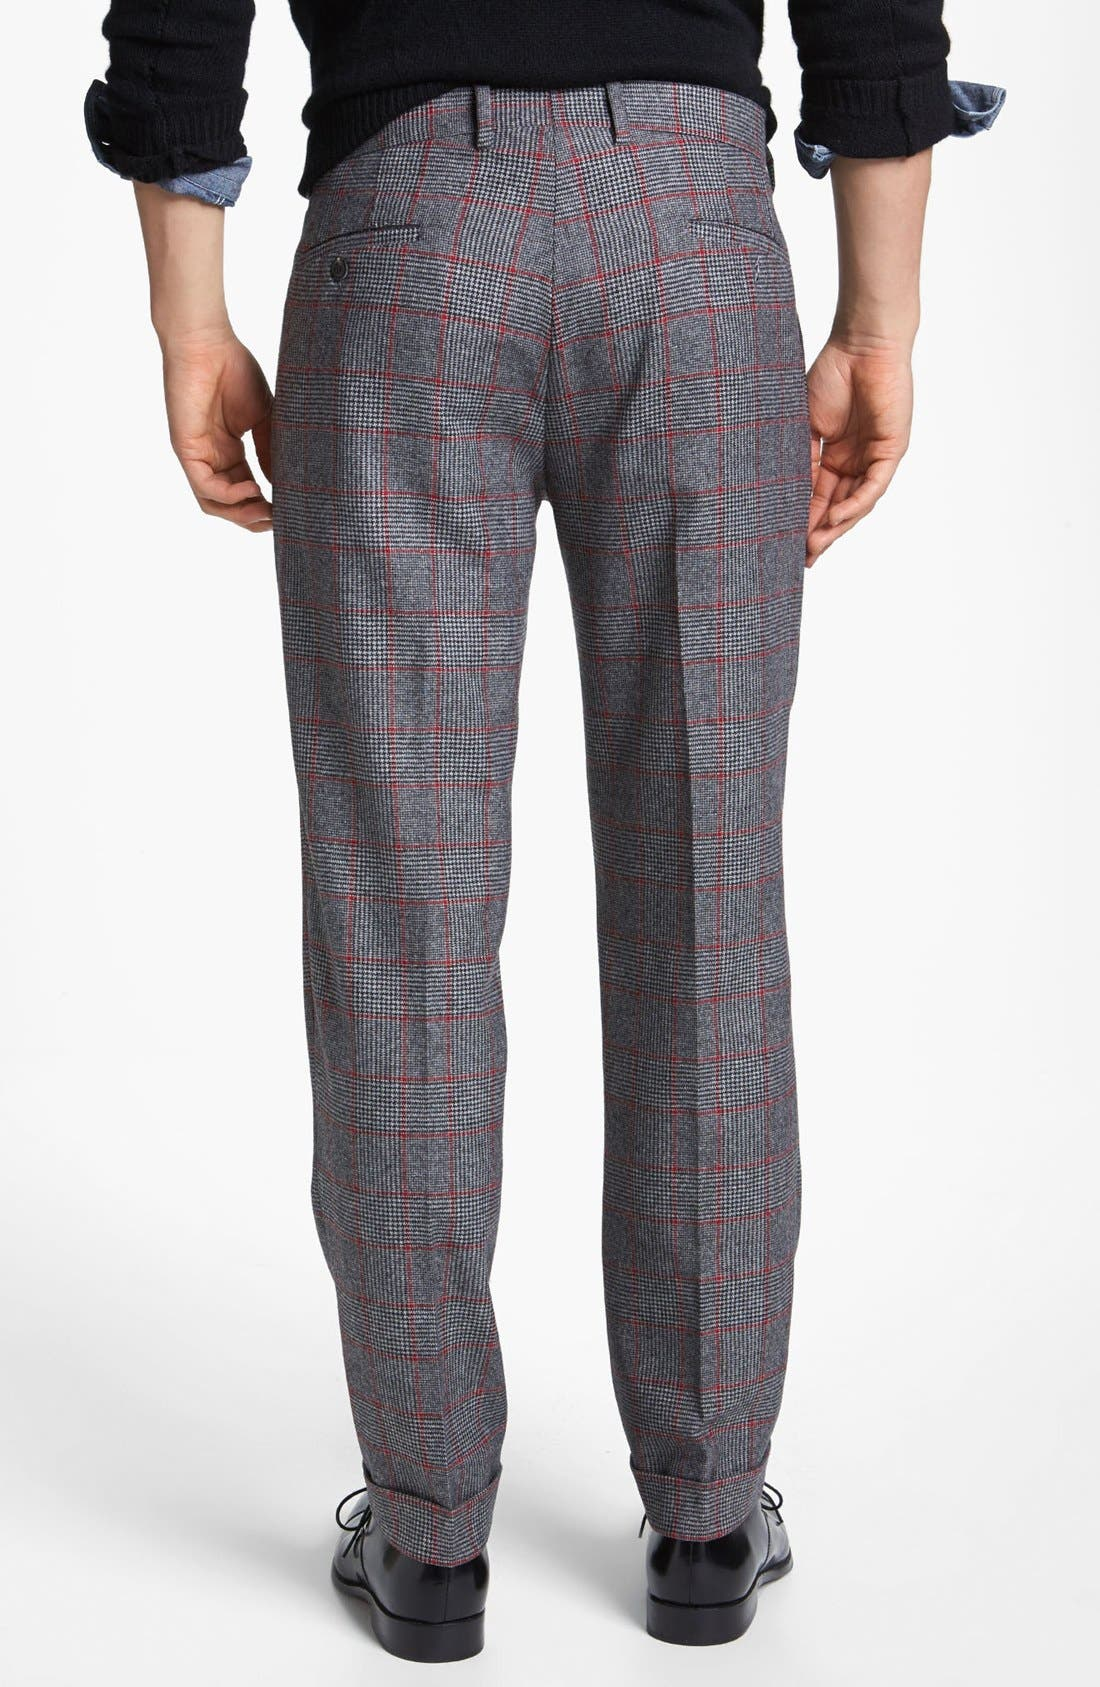 MICHAEL BASTIAN, Skinny Fit Glen Plaid Pants, Alternate thumbnail 3, color, 023